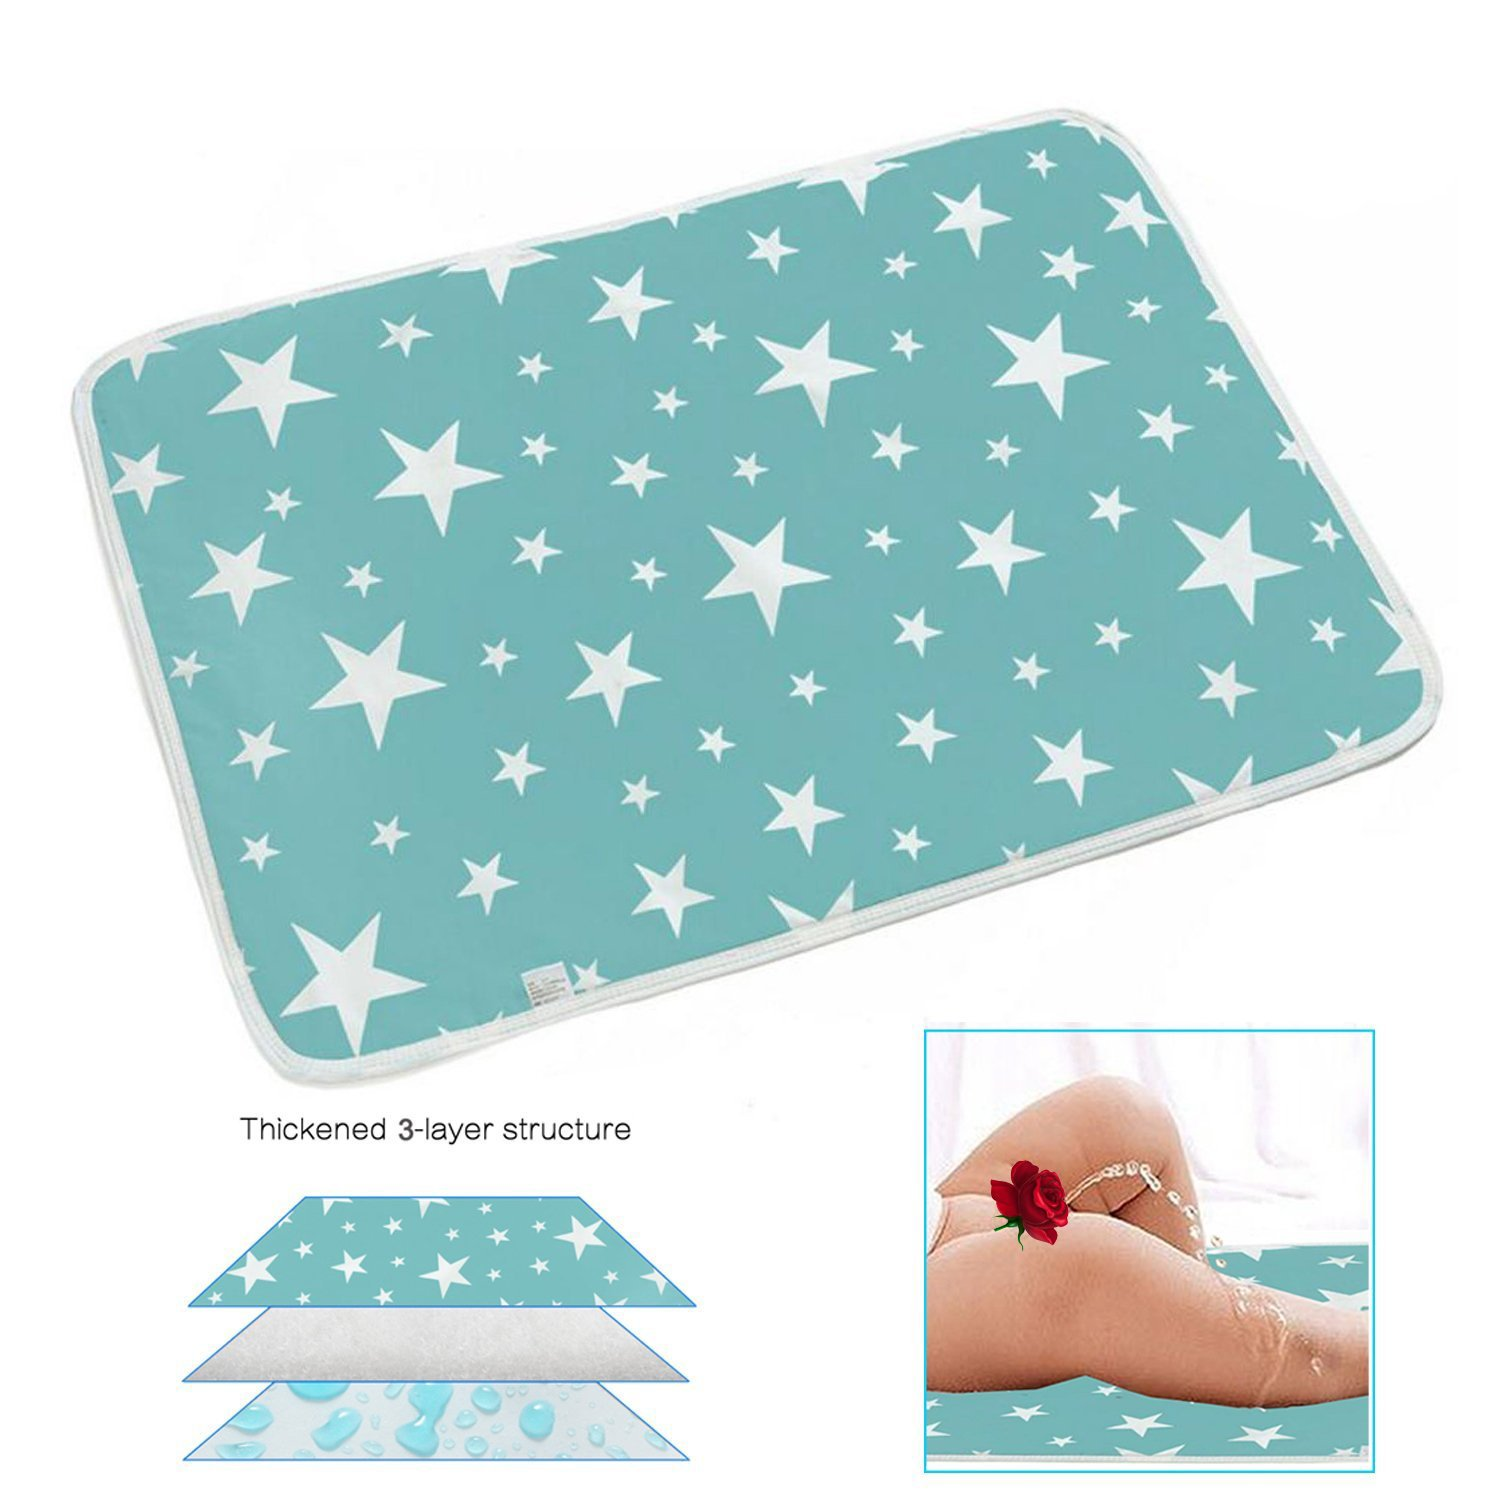 Changing Pad - Biggest Portable Changing Mat to Change Diaper (20x28) Waterproof Sheet for Any Places for Home Travel Bed Play Stroller Crib Car - Mattress Pad Cover for Boys and Girls Yiwalab